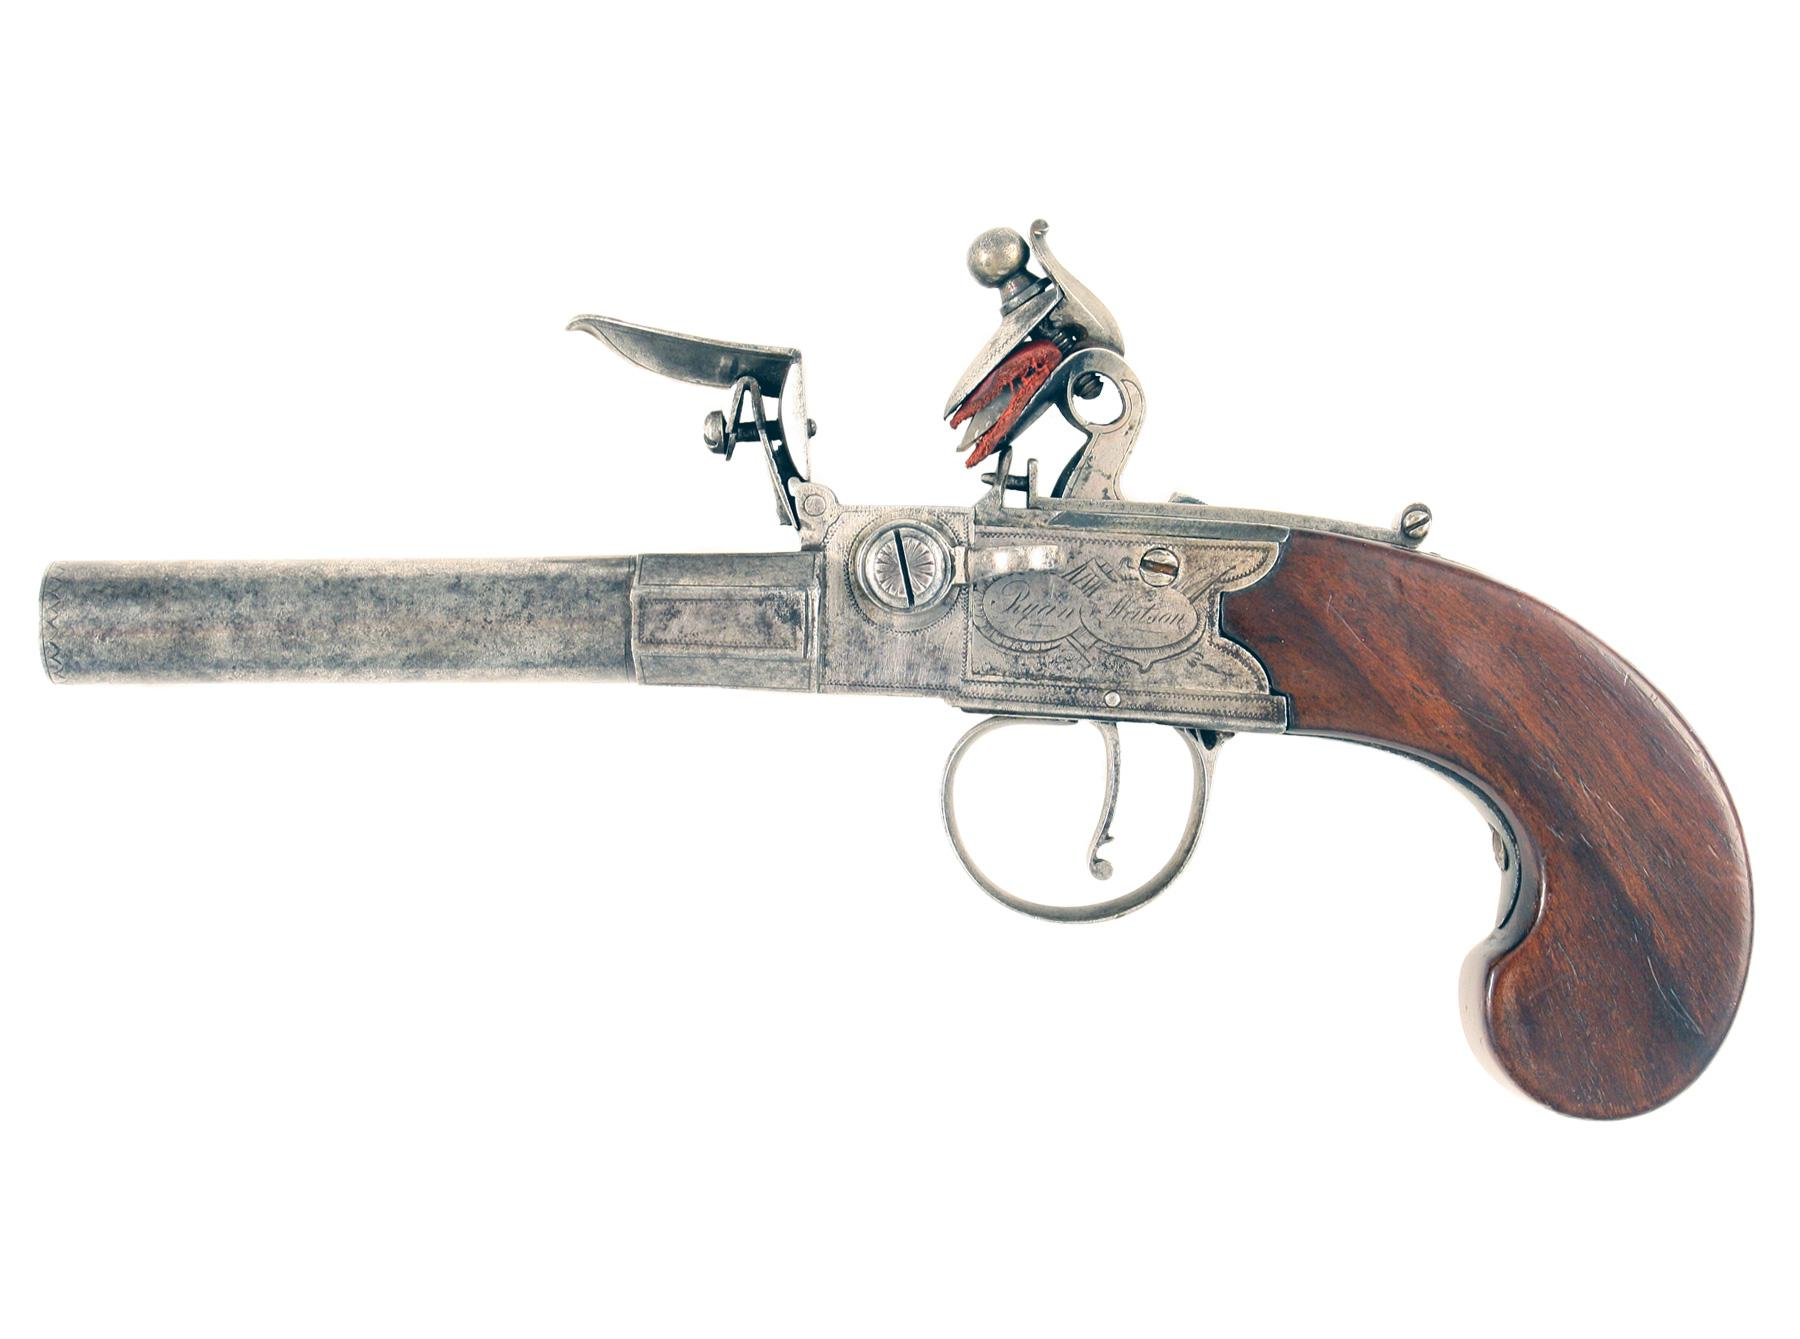 A Rare Double Barrelled Flintlock Pistol